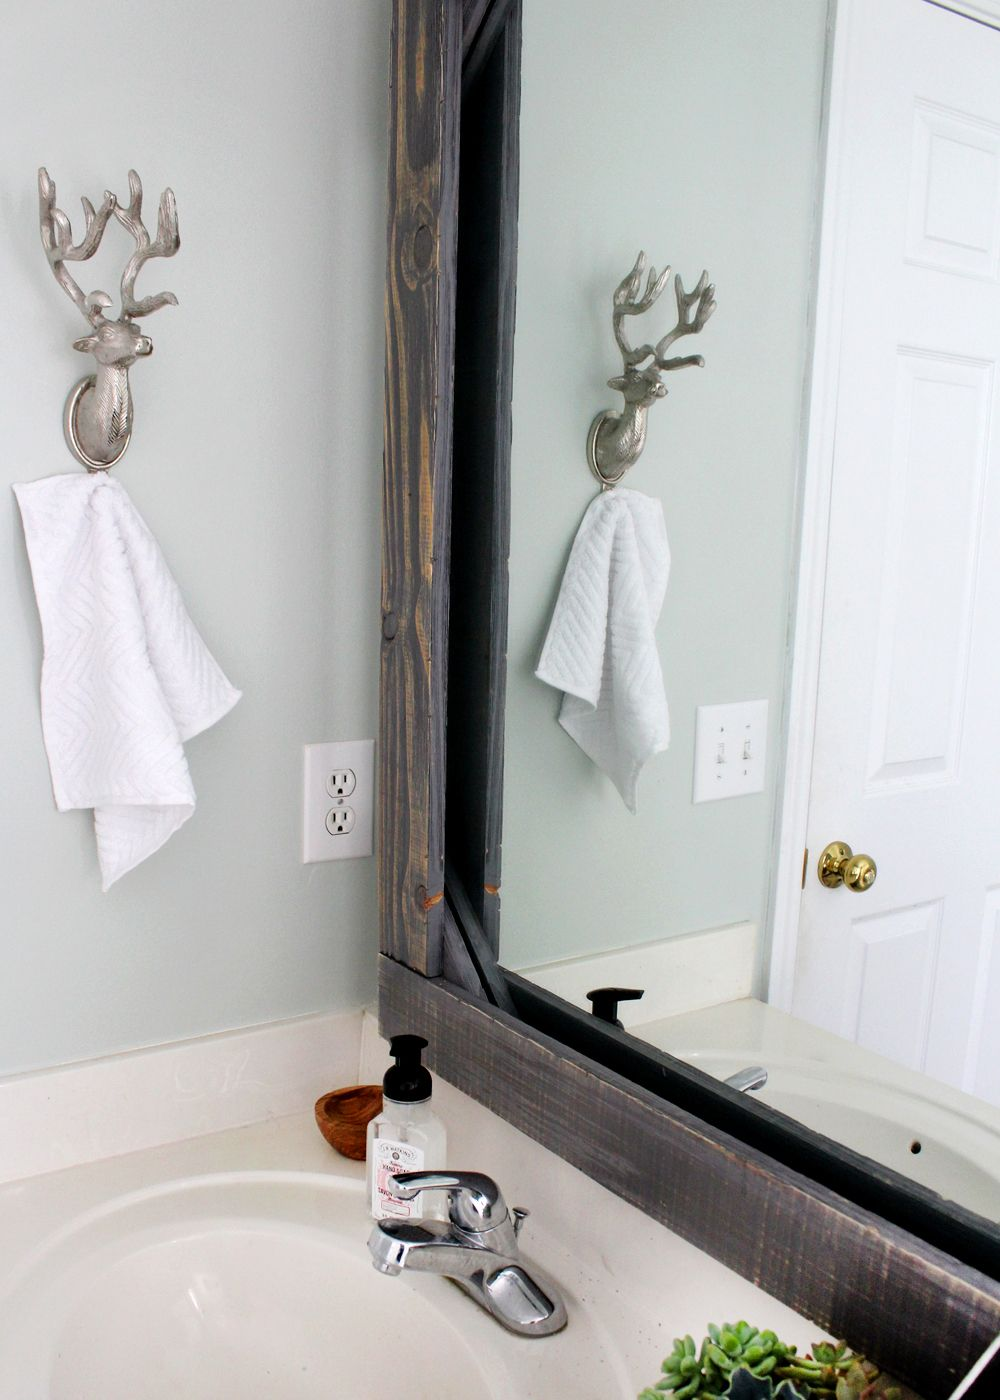 Diy Rustic Wood Mirror Frame  Bathroom Mirrors Rustic Wood And Woods Cool Designing Your Bathroom Design Ideas